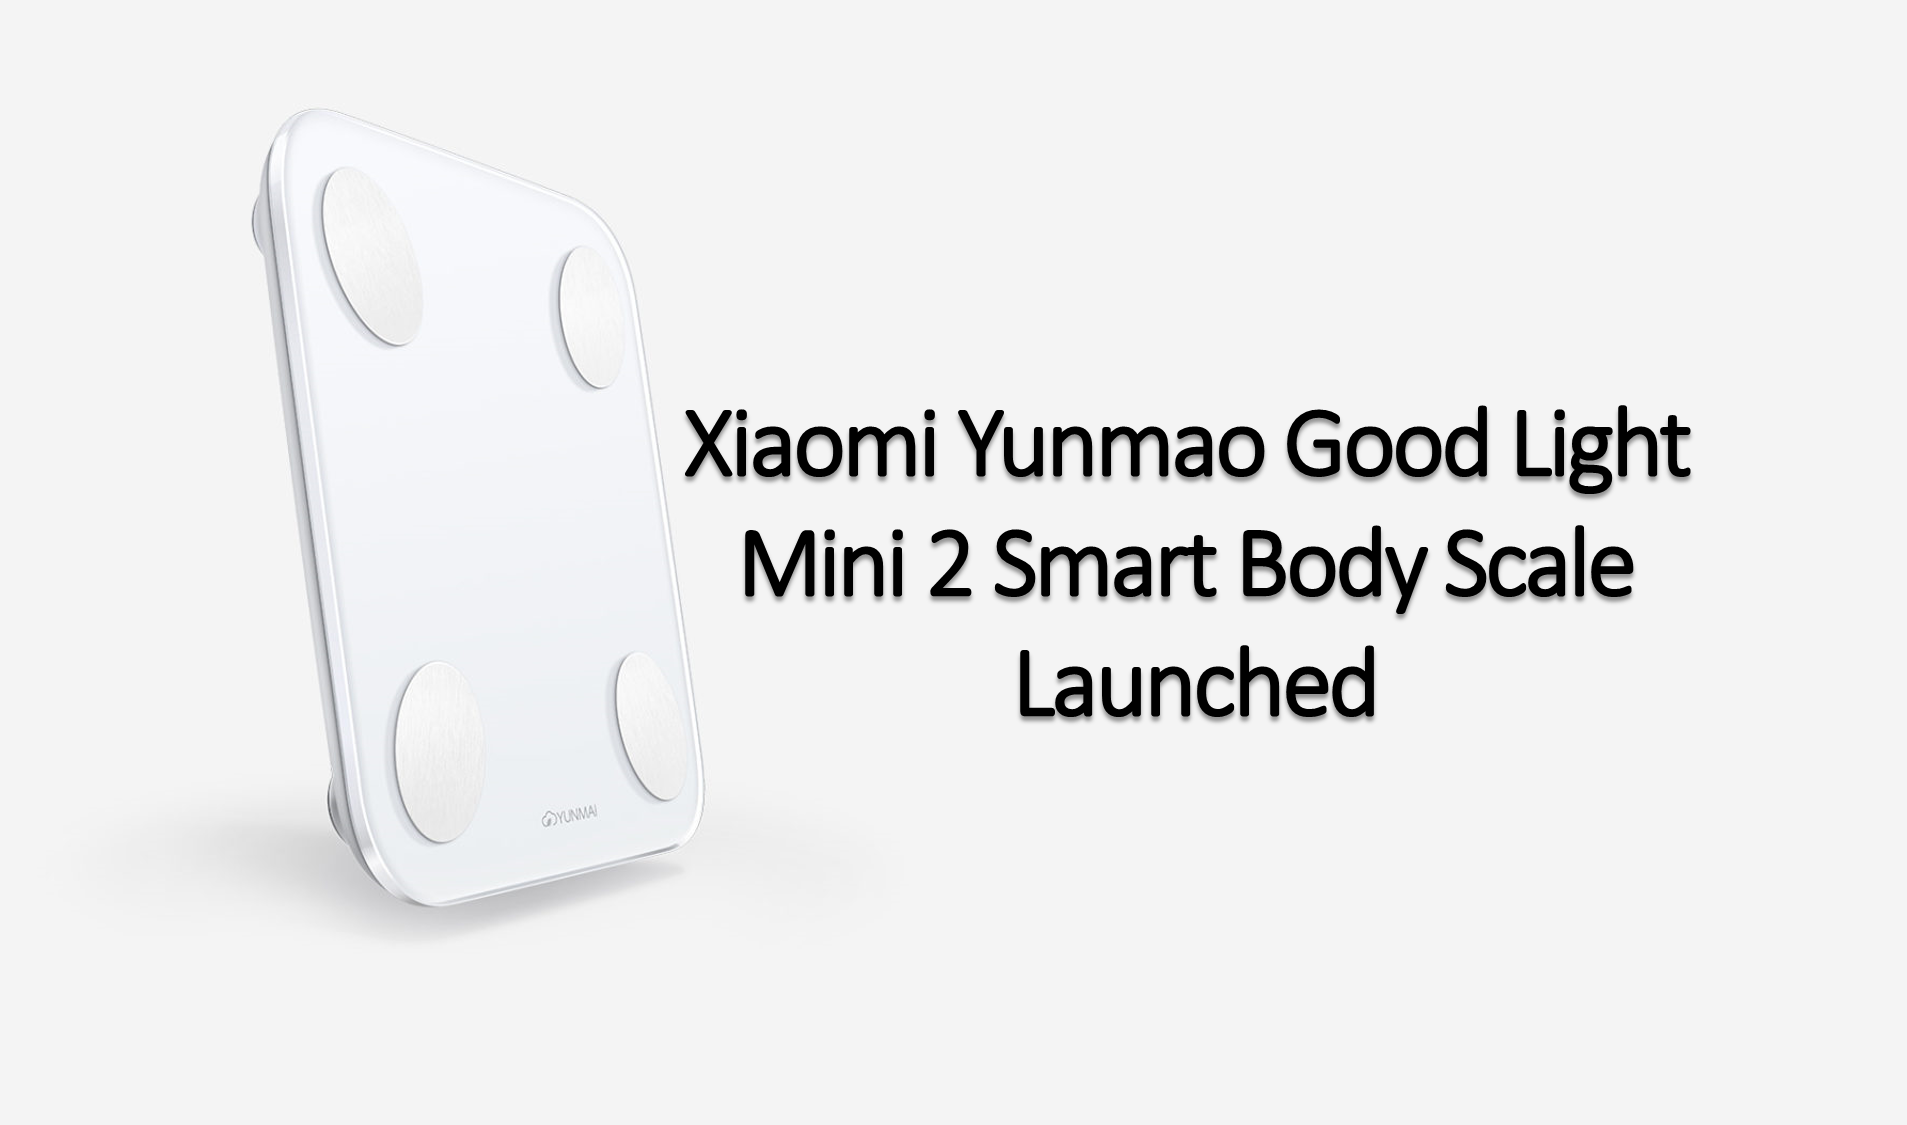 Xiaomi Good Light Mini 2 Smart Body Scale